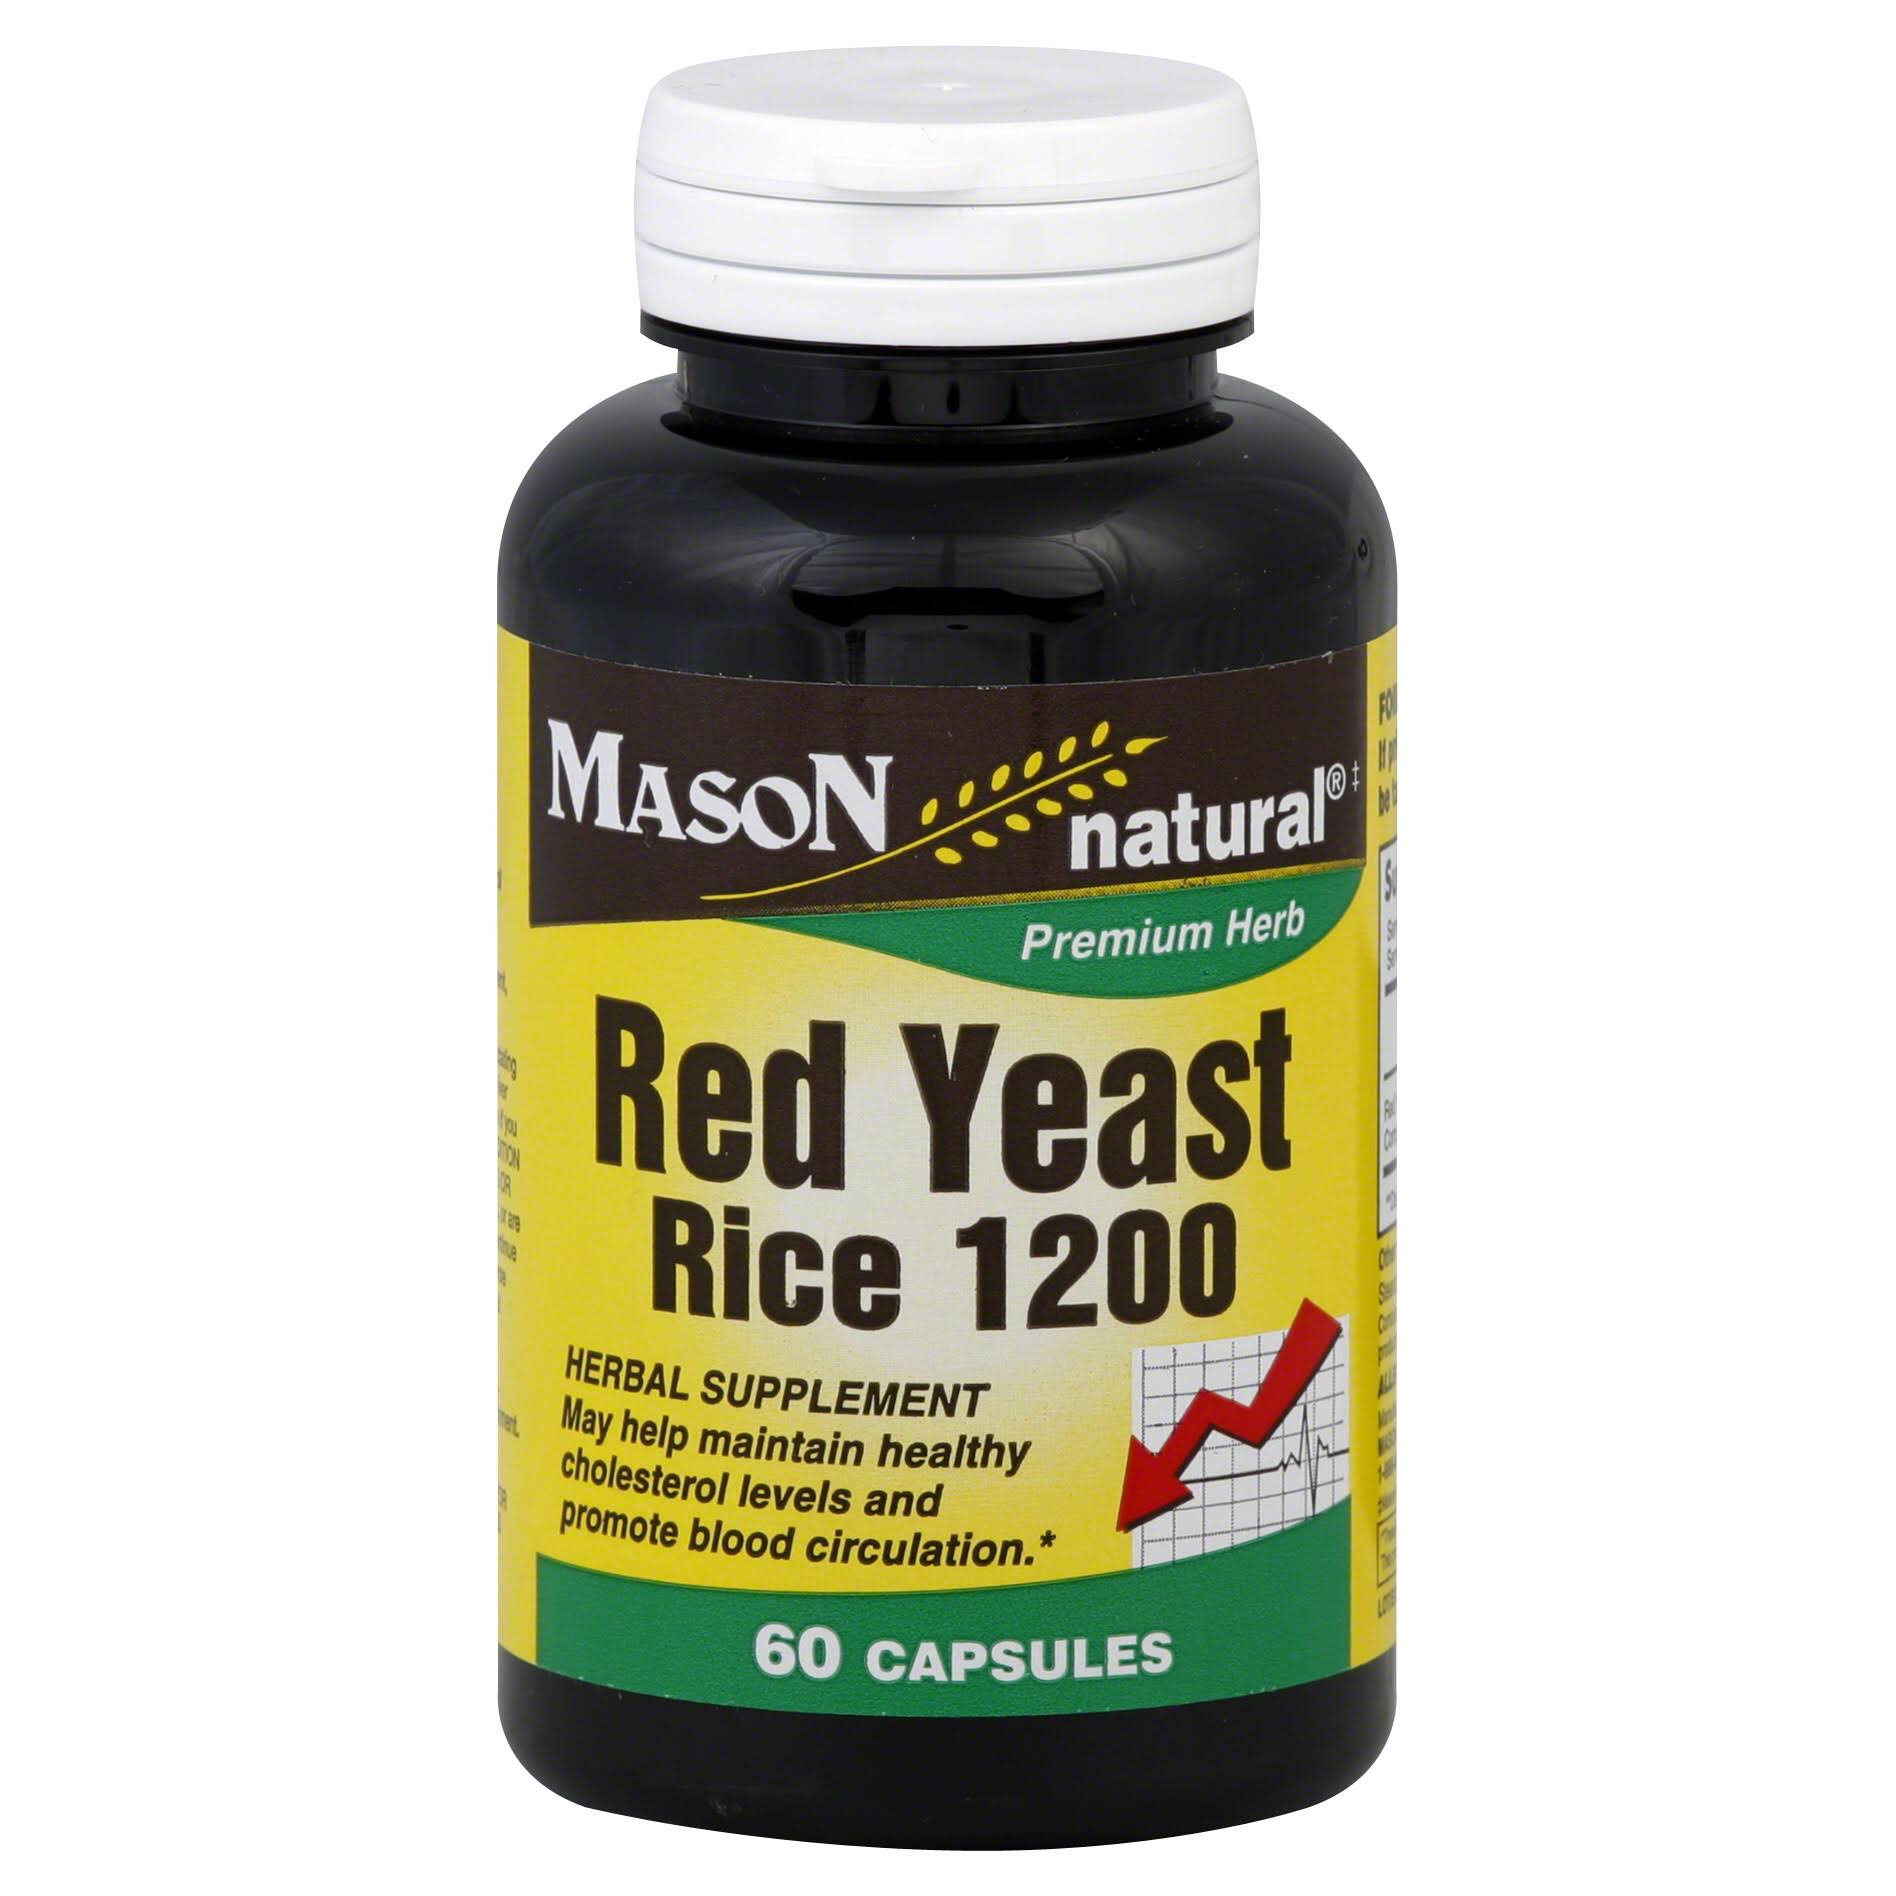 Mason Natural Premium Herb Red Yeast Rice Herbal Supplement - 1200mg, 60 Capsules